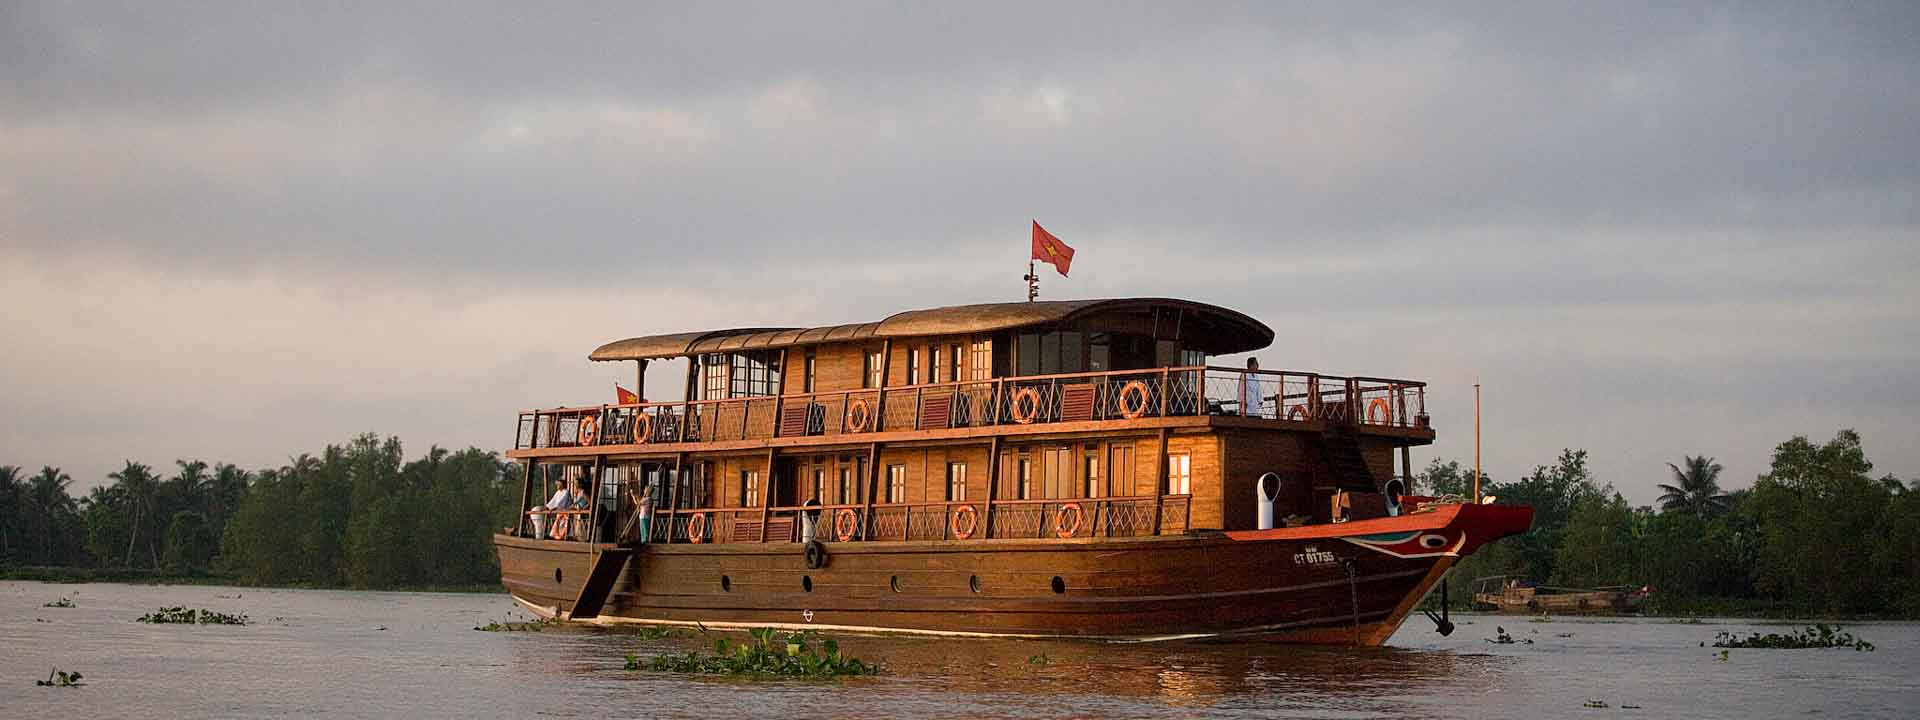 Mekong River cruise on The Toum Tiou I Saigon Phnom Penh 6 days